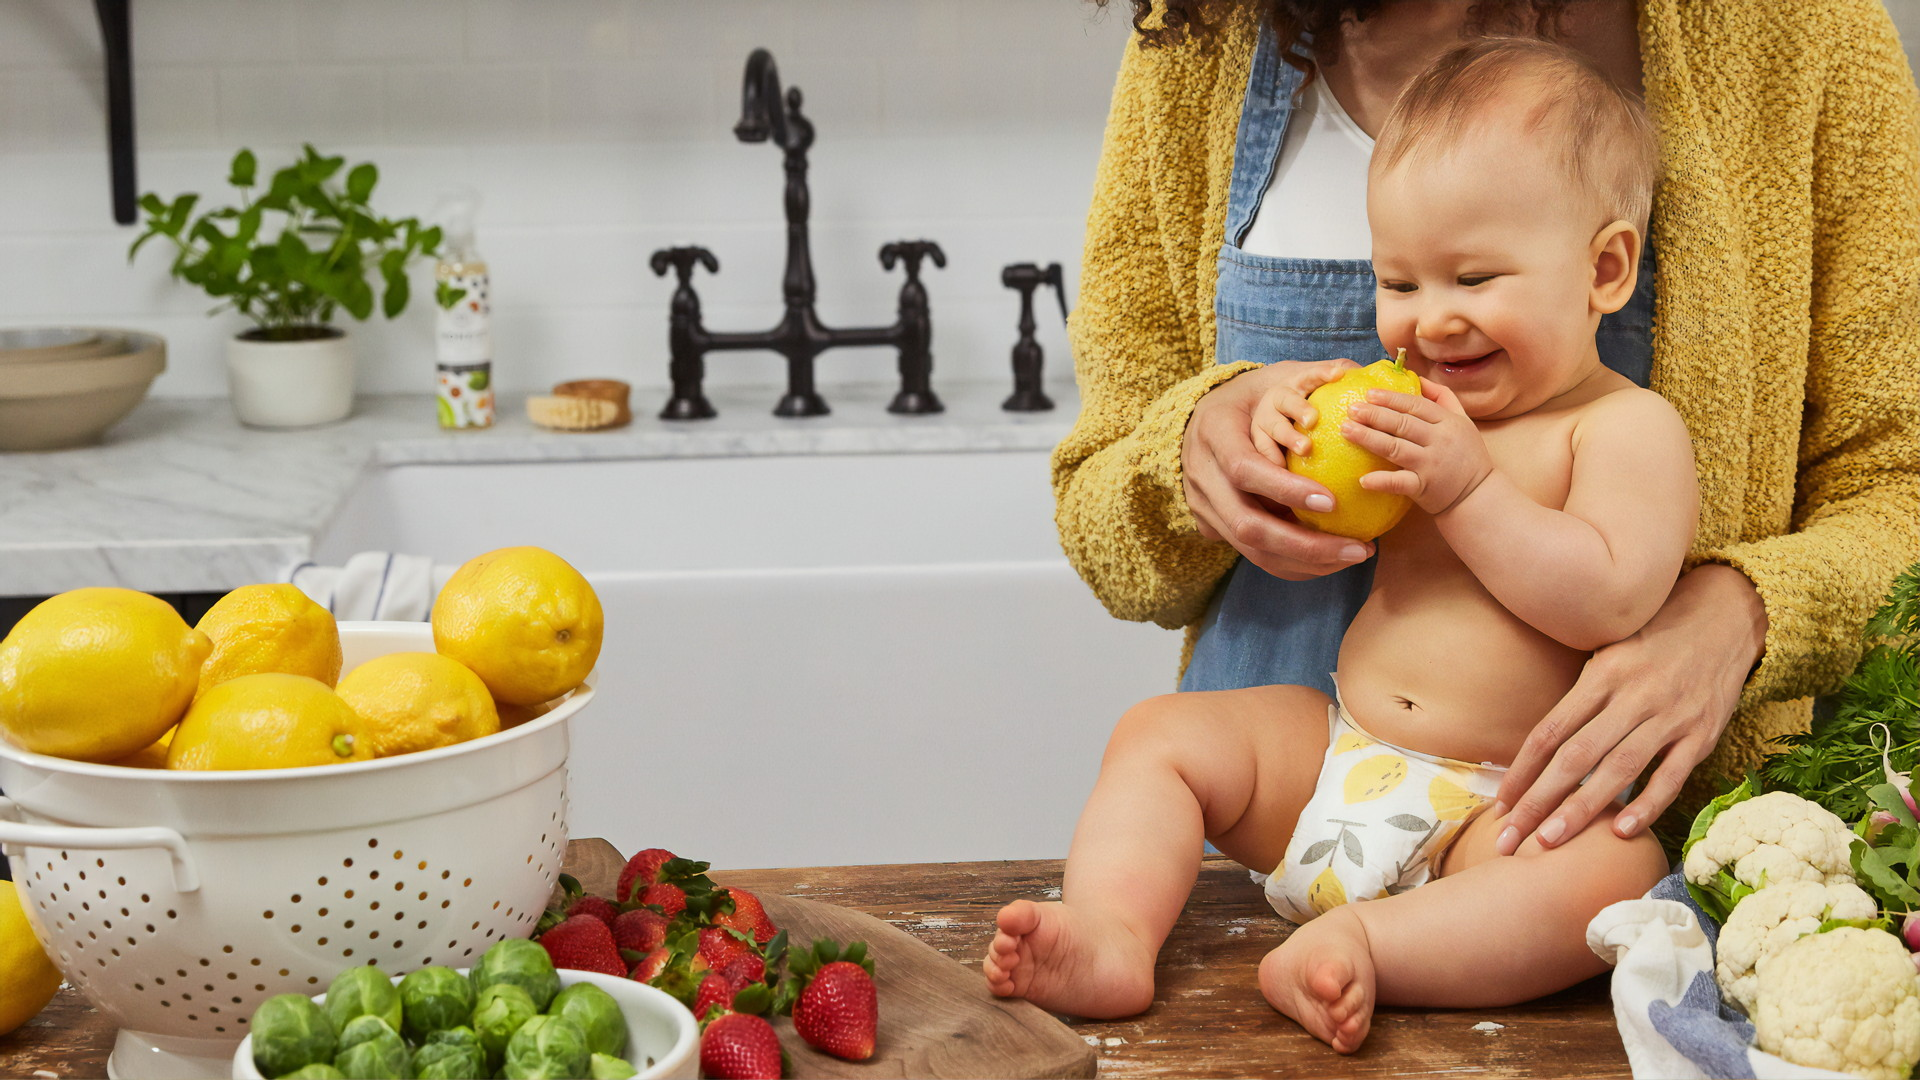 How organic brands can benefit from the booming baby care market in China